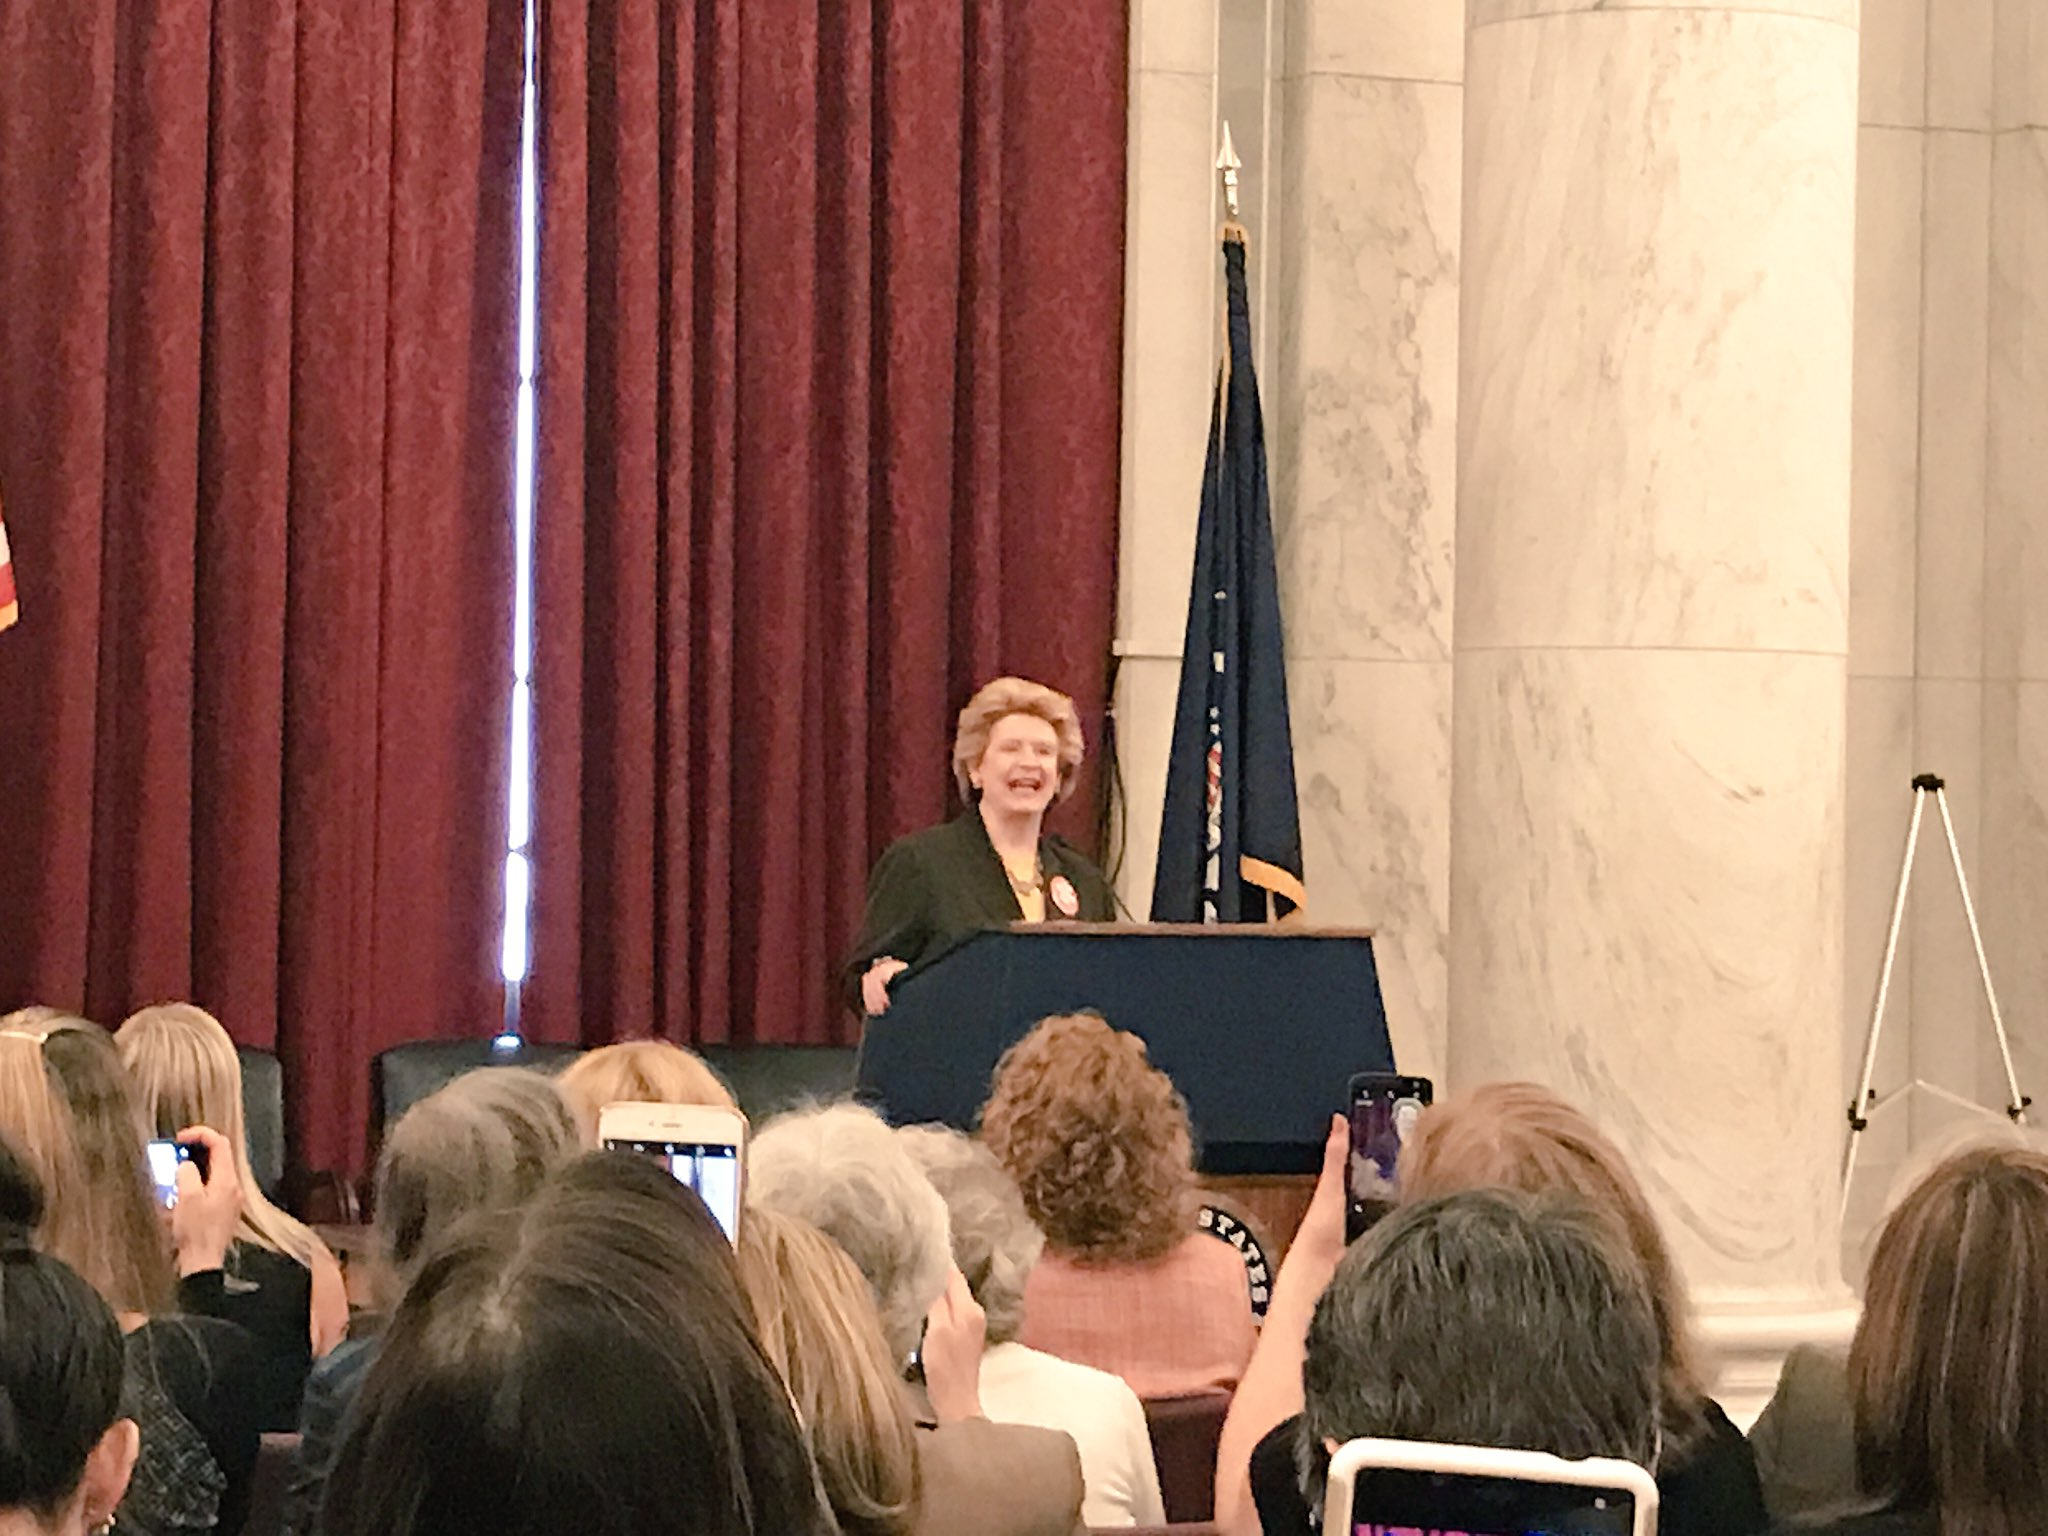 """""""Now is the time to be loud."""" Thank you, @SenStabenow! #hungerpc17 #EndHungerNow https://t.co/Is2Ry7XHOC"""